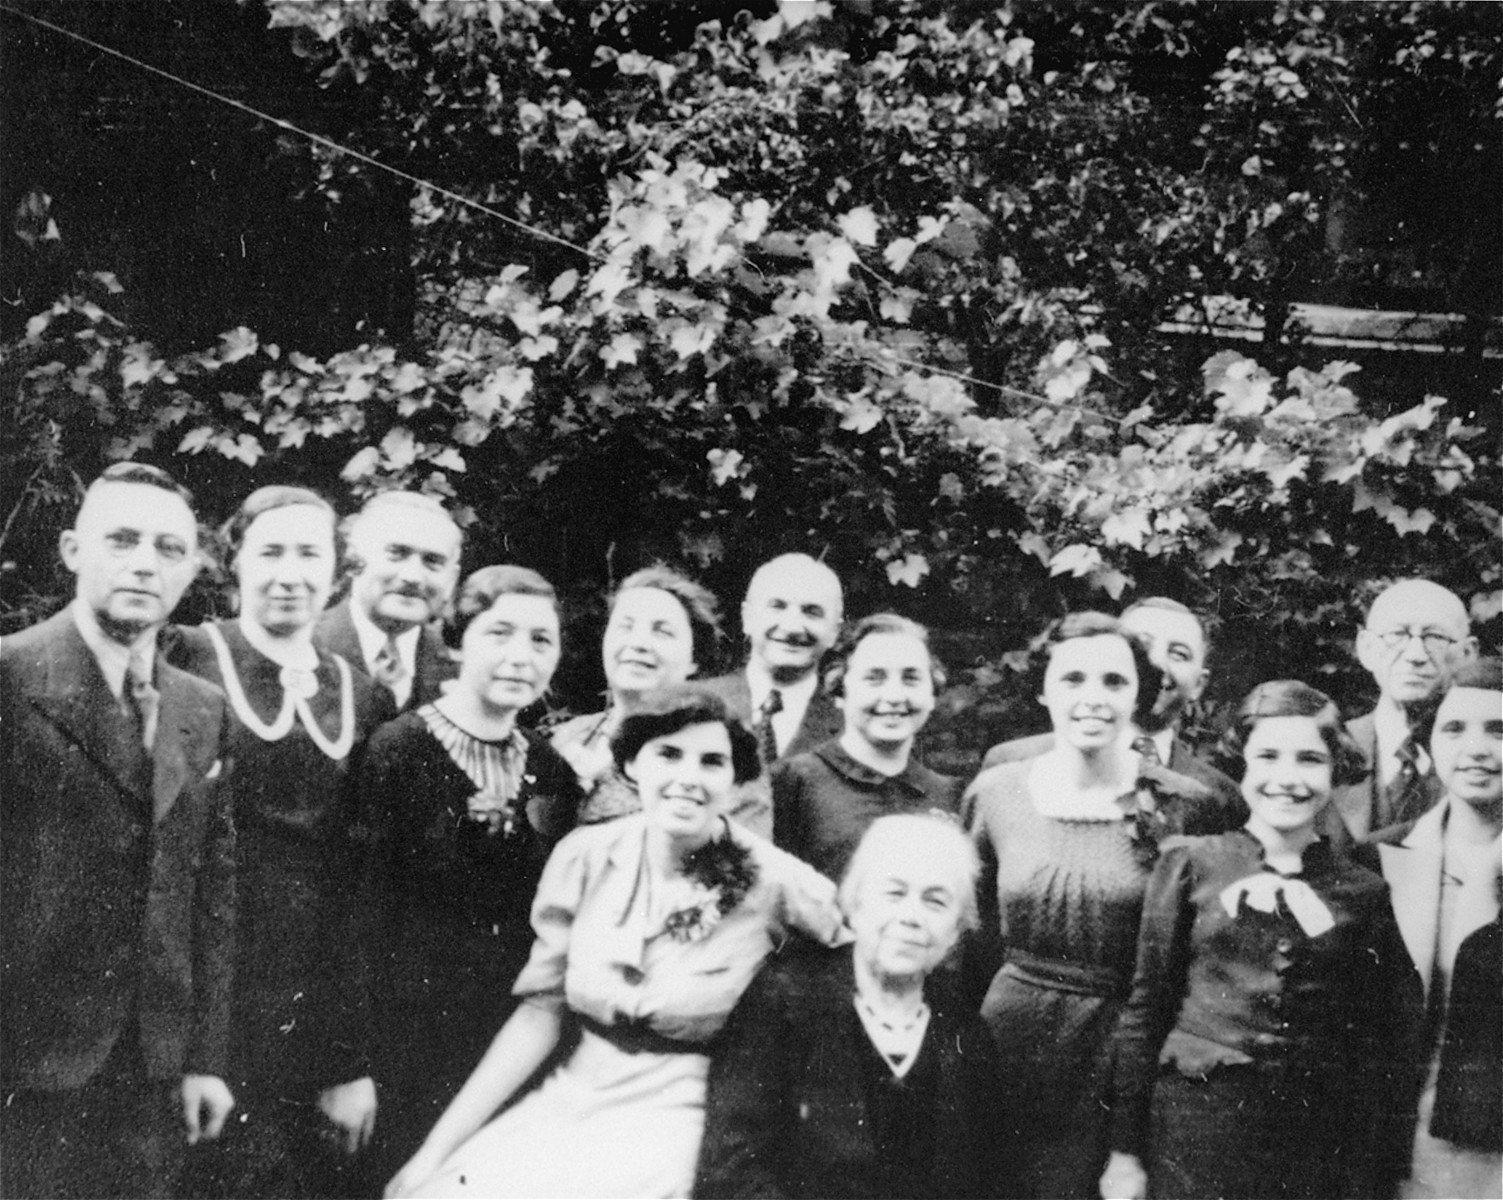 Group portrait of the Wachenheimer family taken on the 75th birthday of Lina Weissmann Wachenheimer.   Hedy Wachenheimer, the granddaughter of Lina Weissmann Wachenheimer, is pictured second on the right.